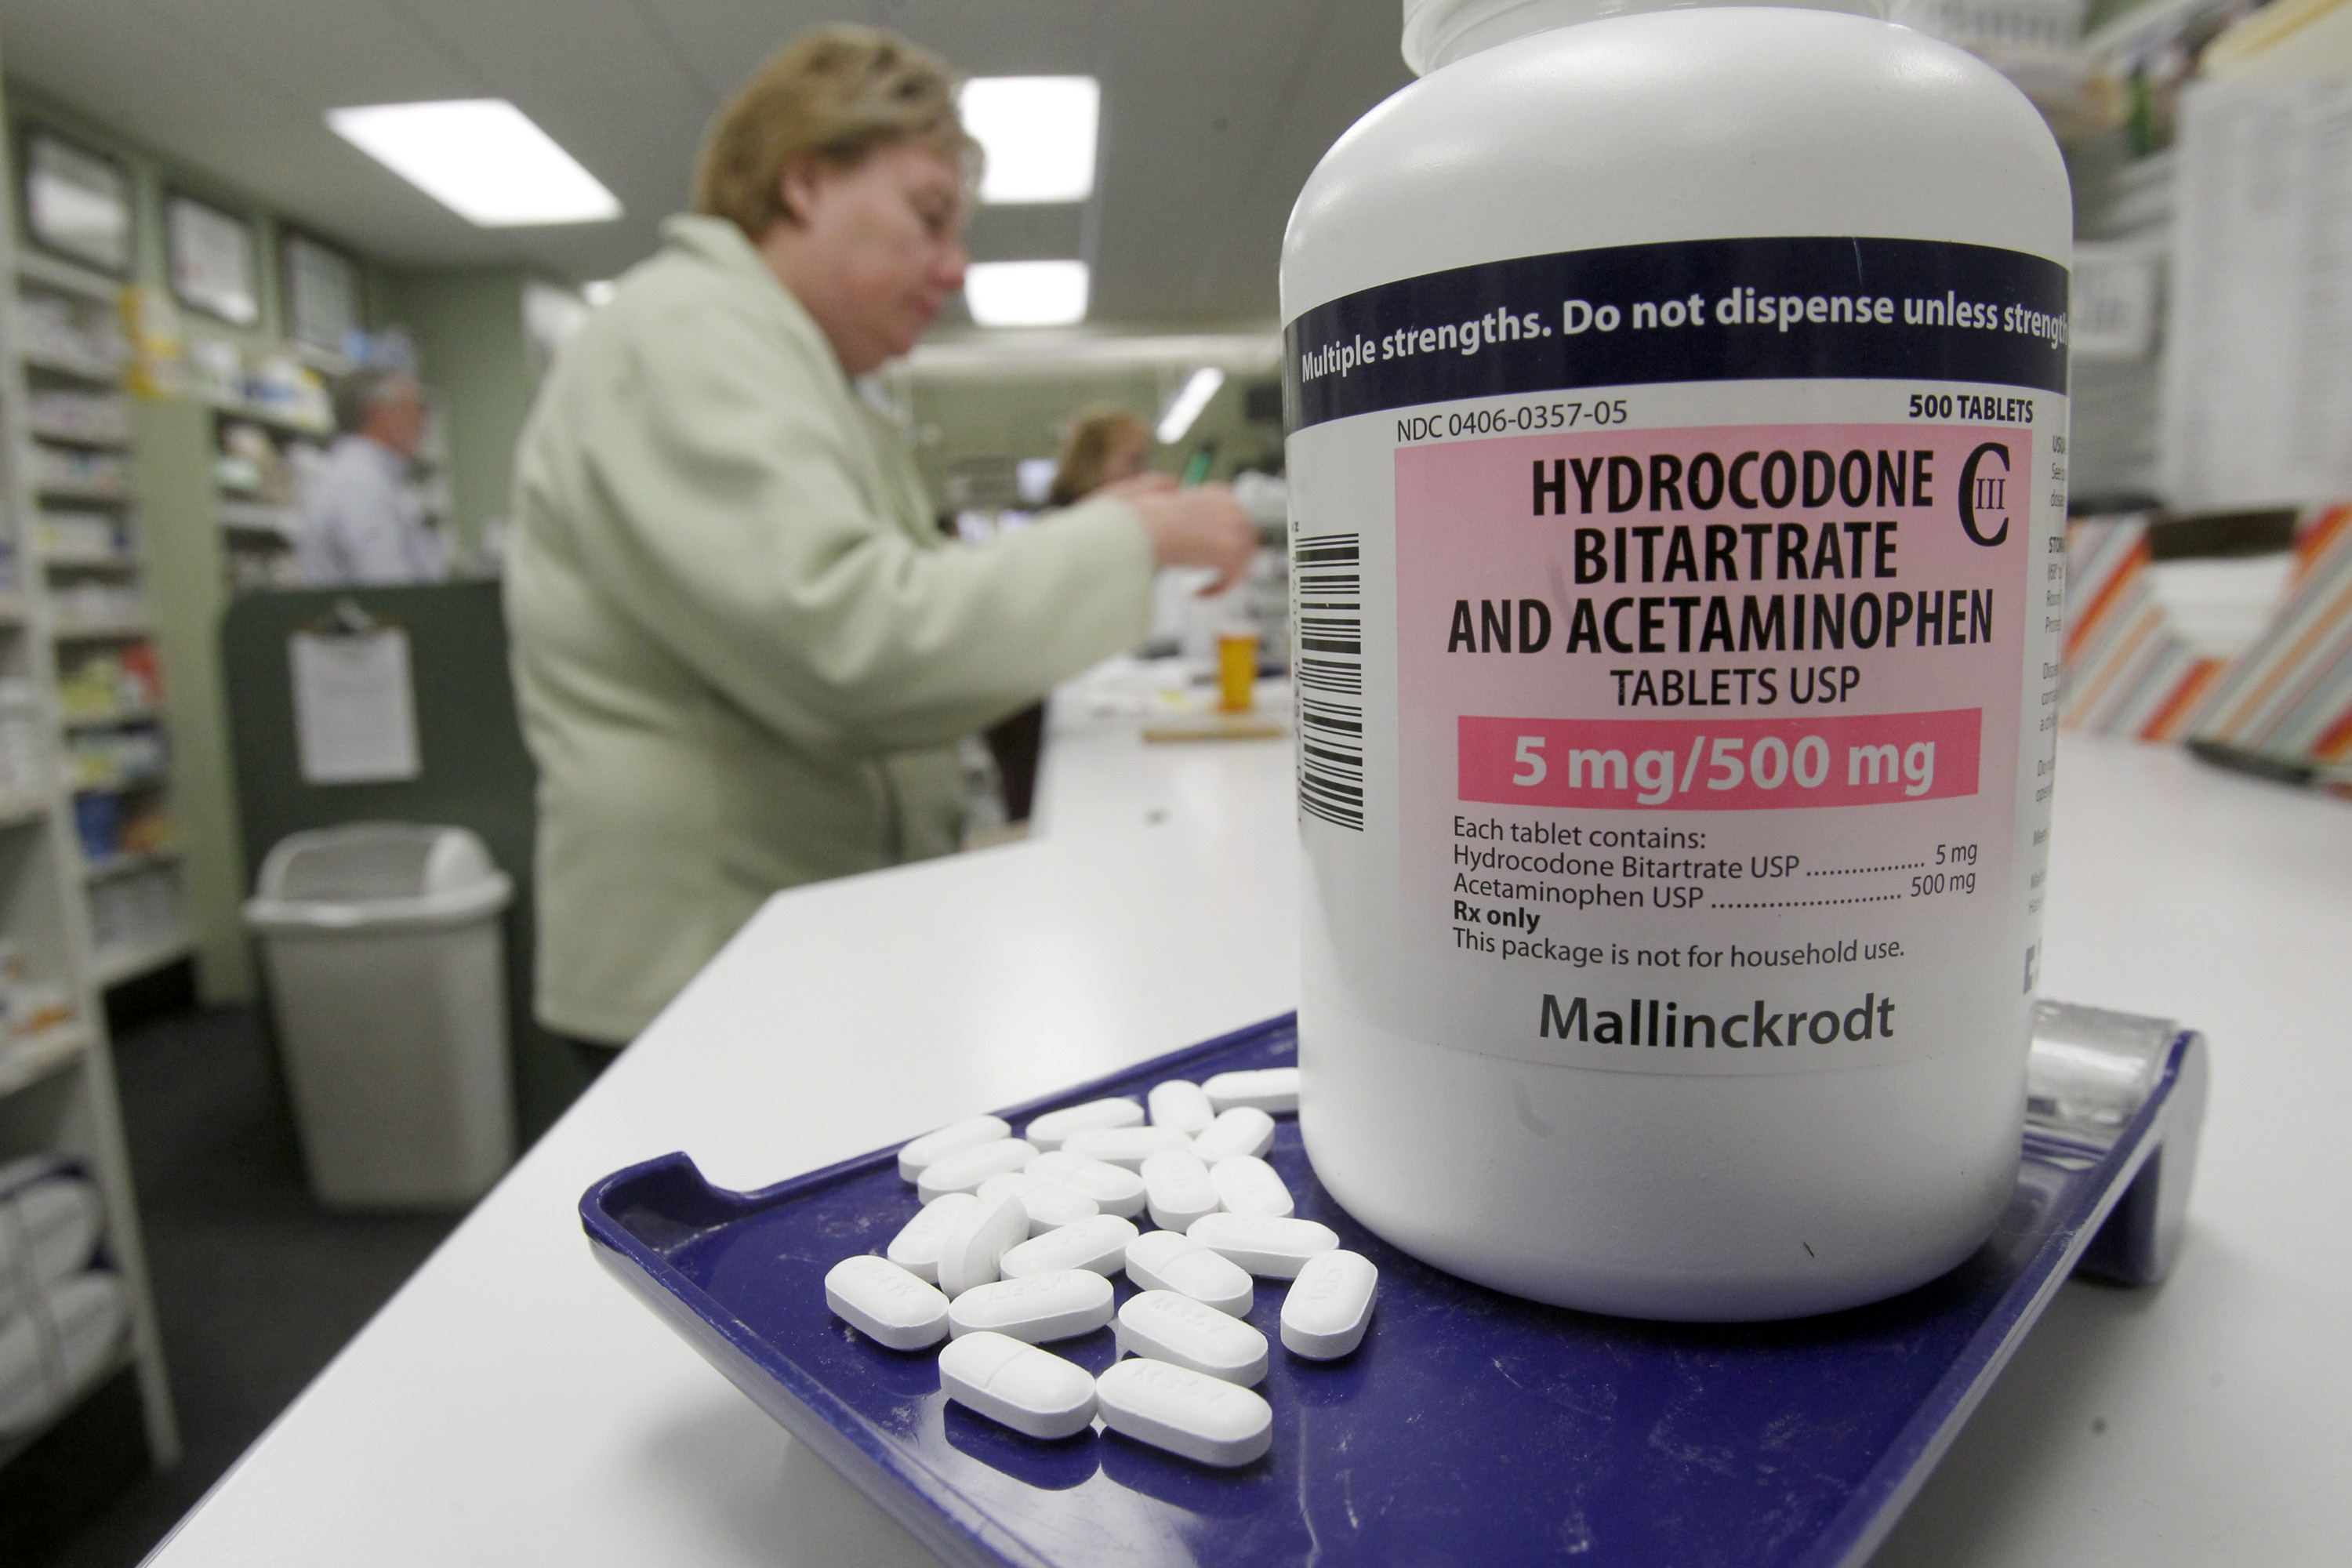 Painkiller Politics: Effort to Curb Prescribing Under Fire